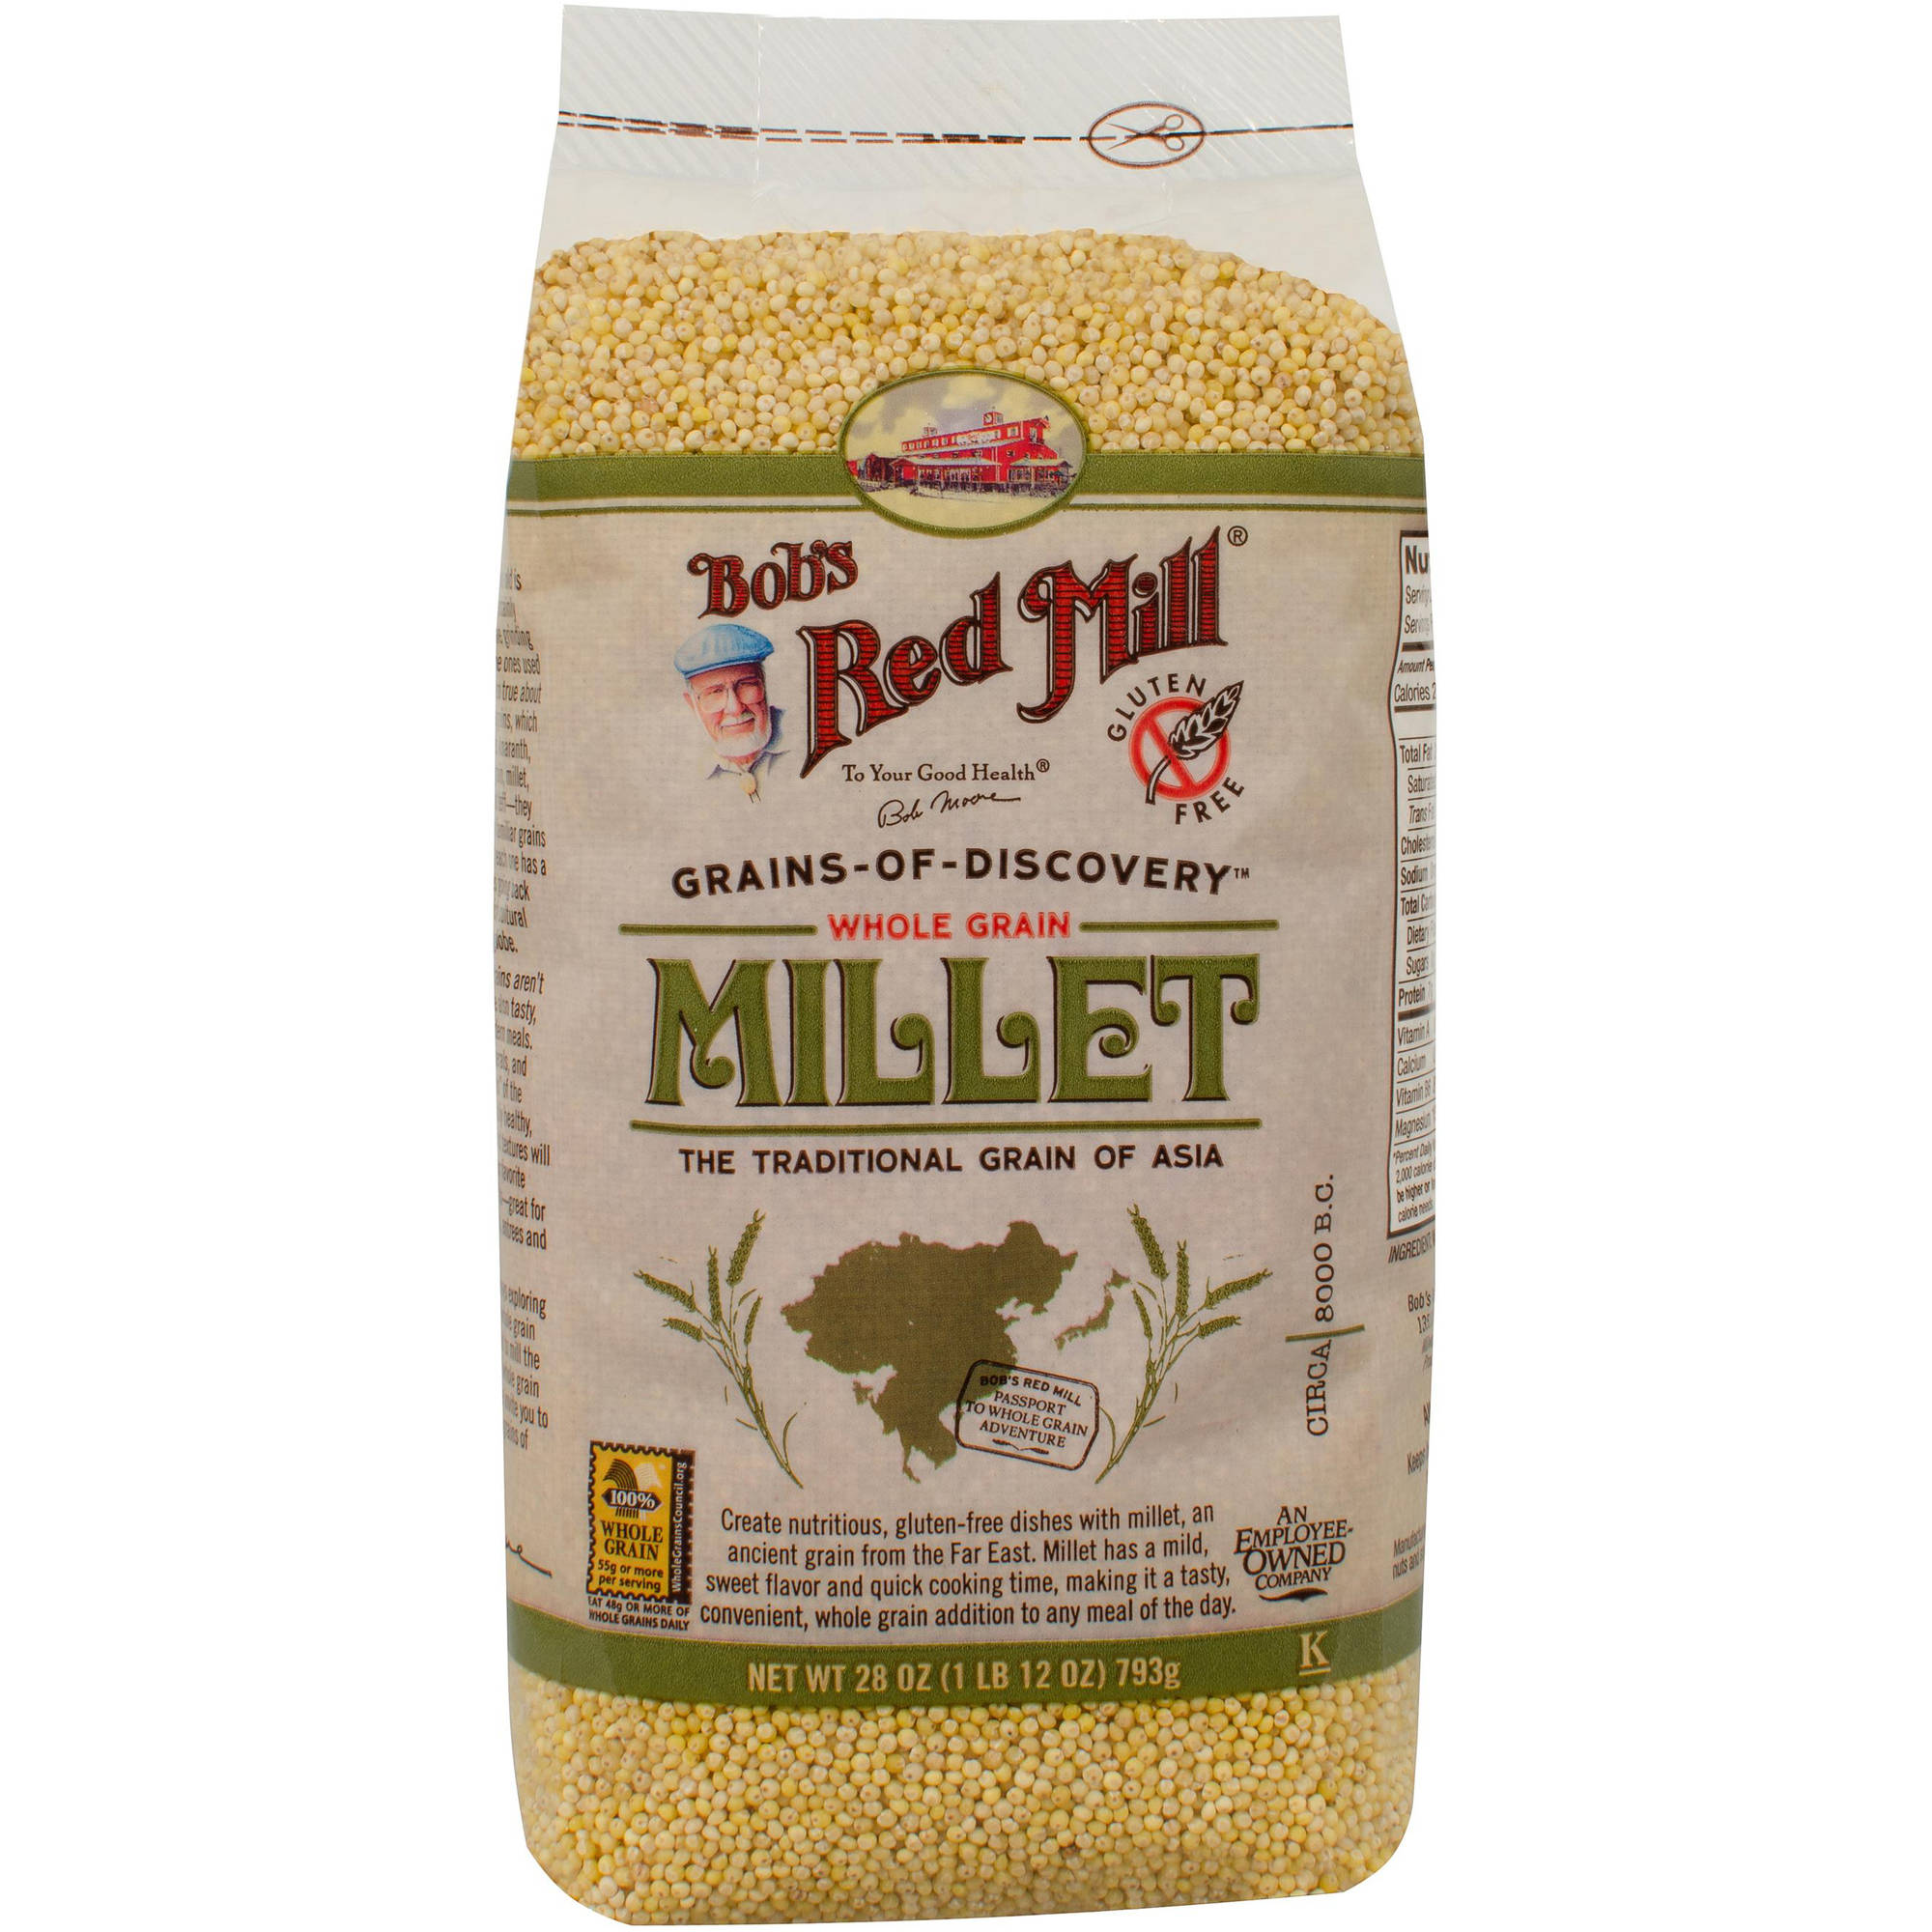 Bob's Red Mill Whole Grain Hulled Millet, 28 oz (Pack of 4)